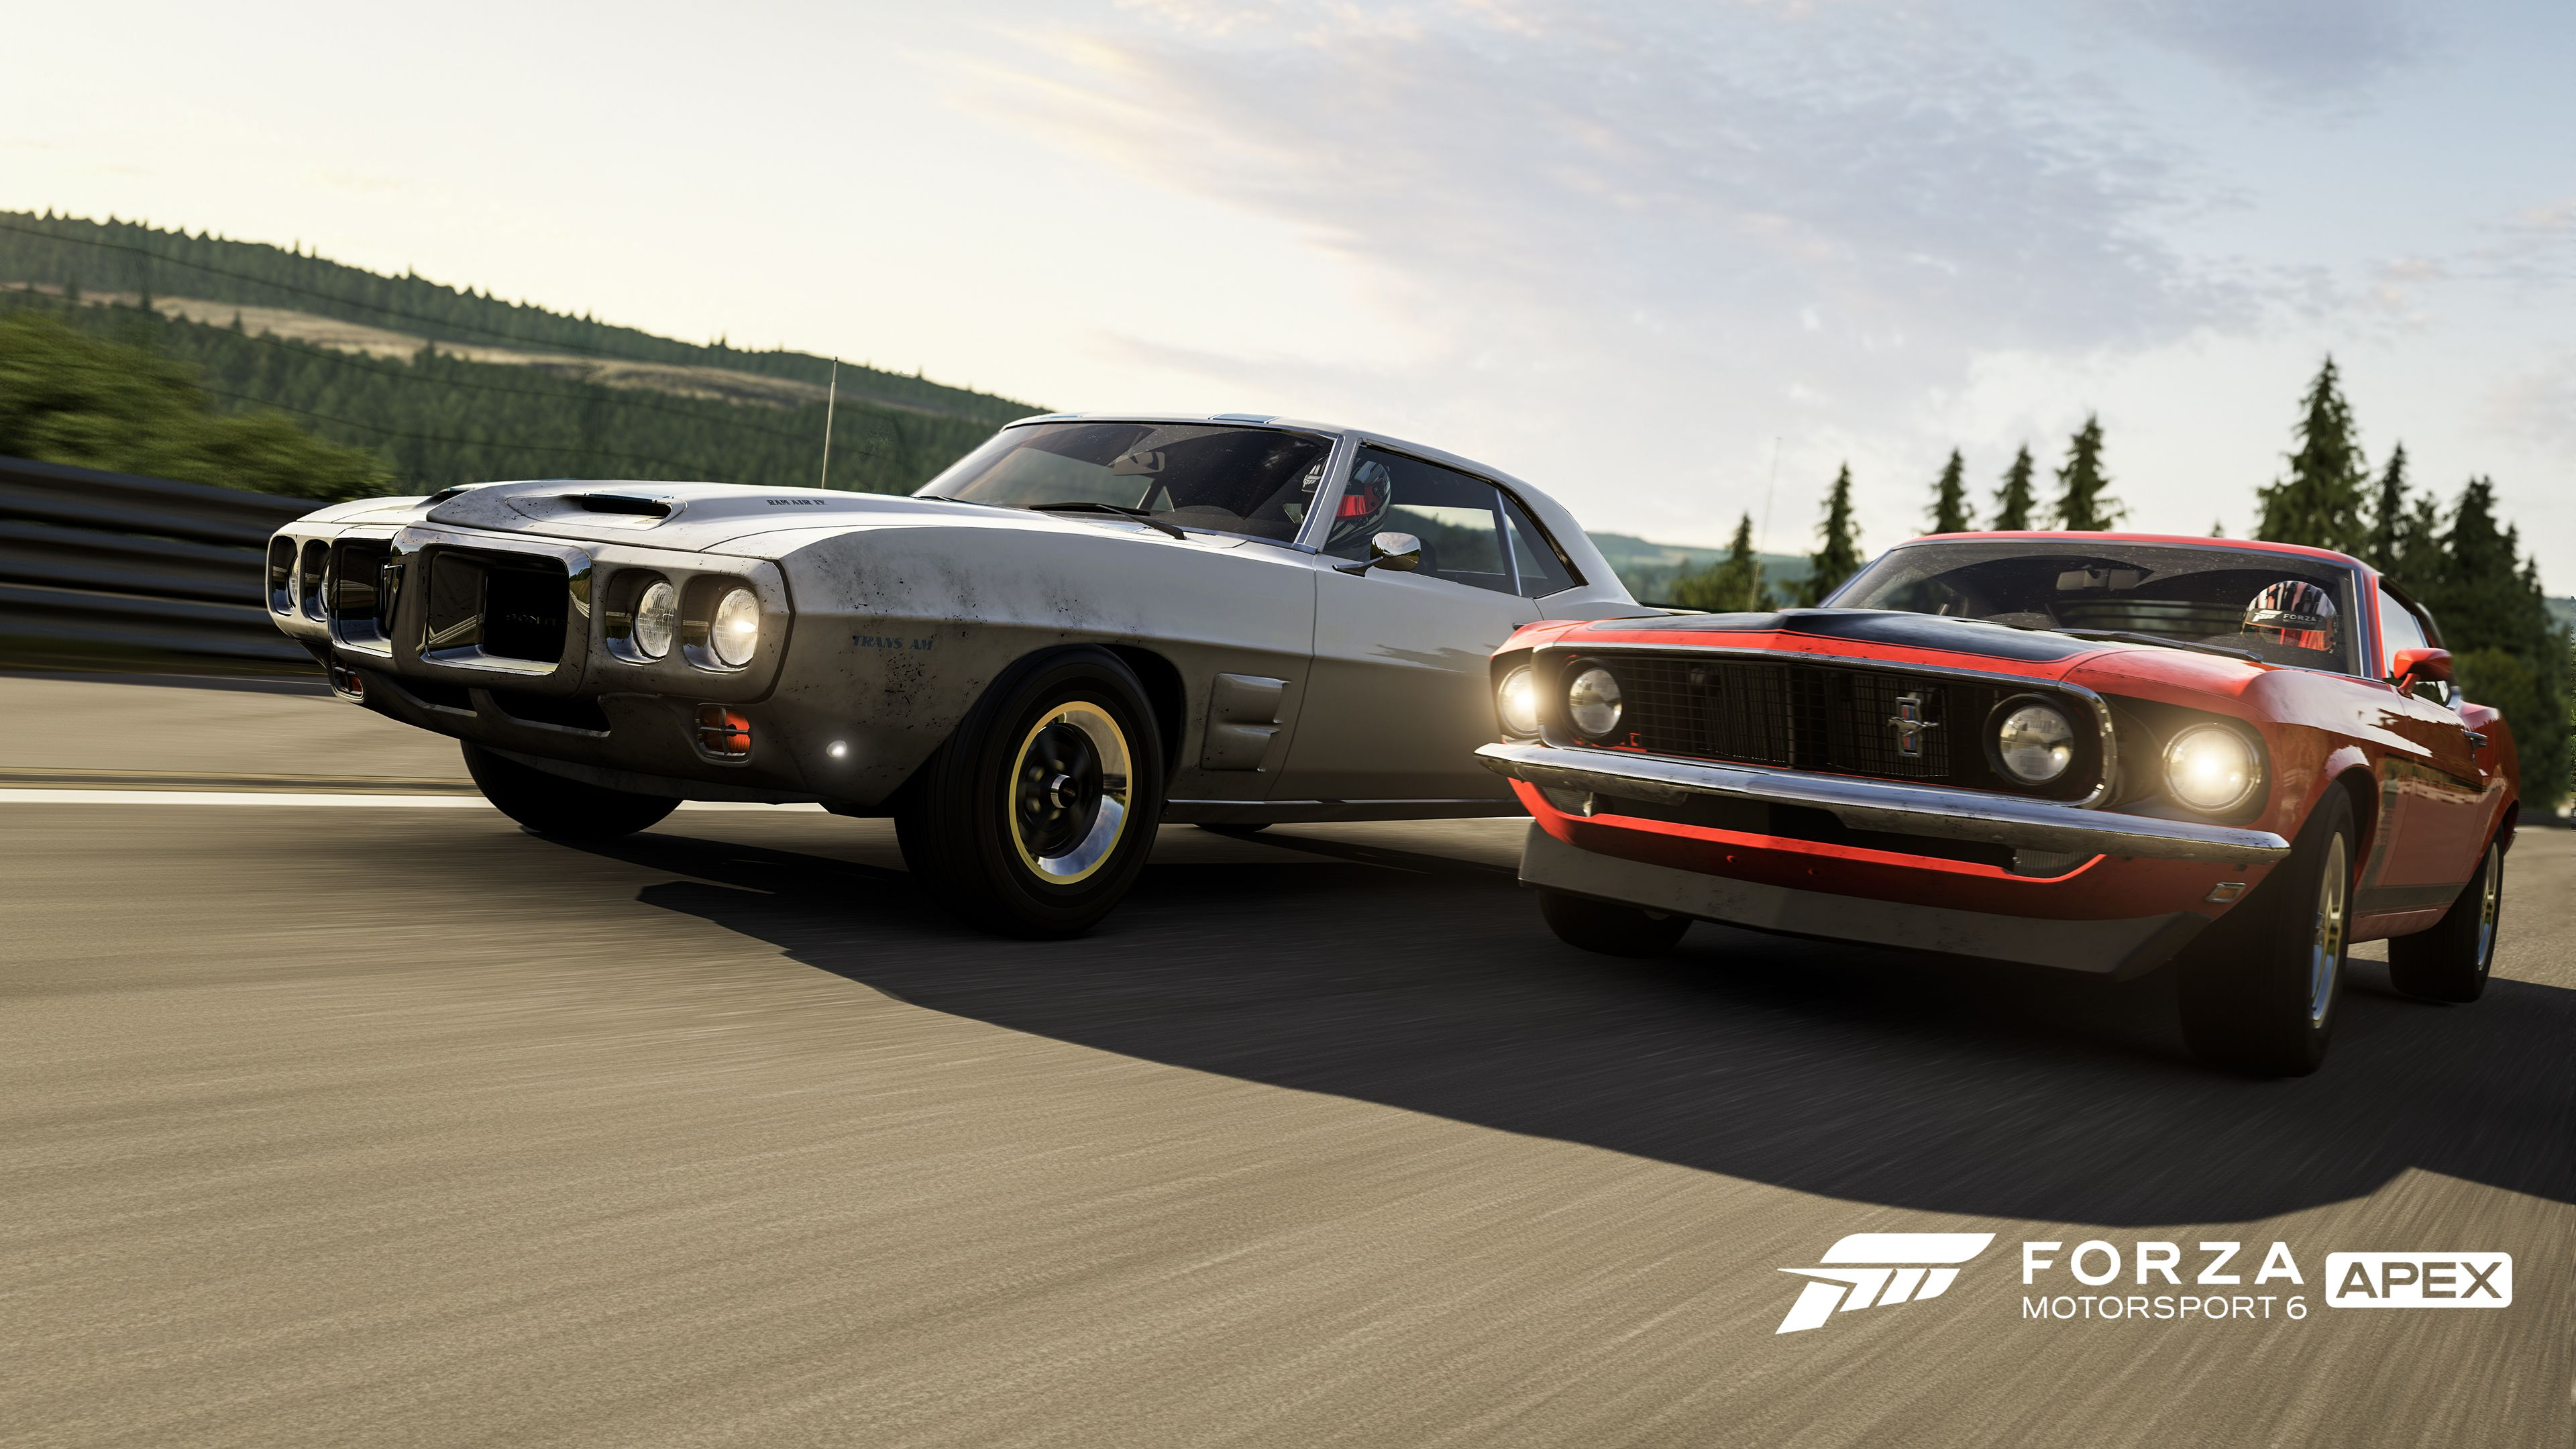 Forza Motorsport 6 Apex Review: Forza Motorsport 6: Apex Wiki